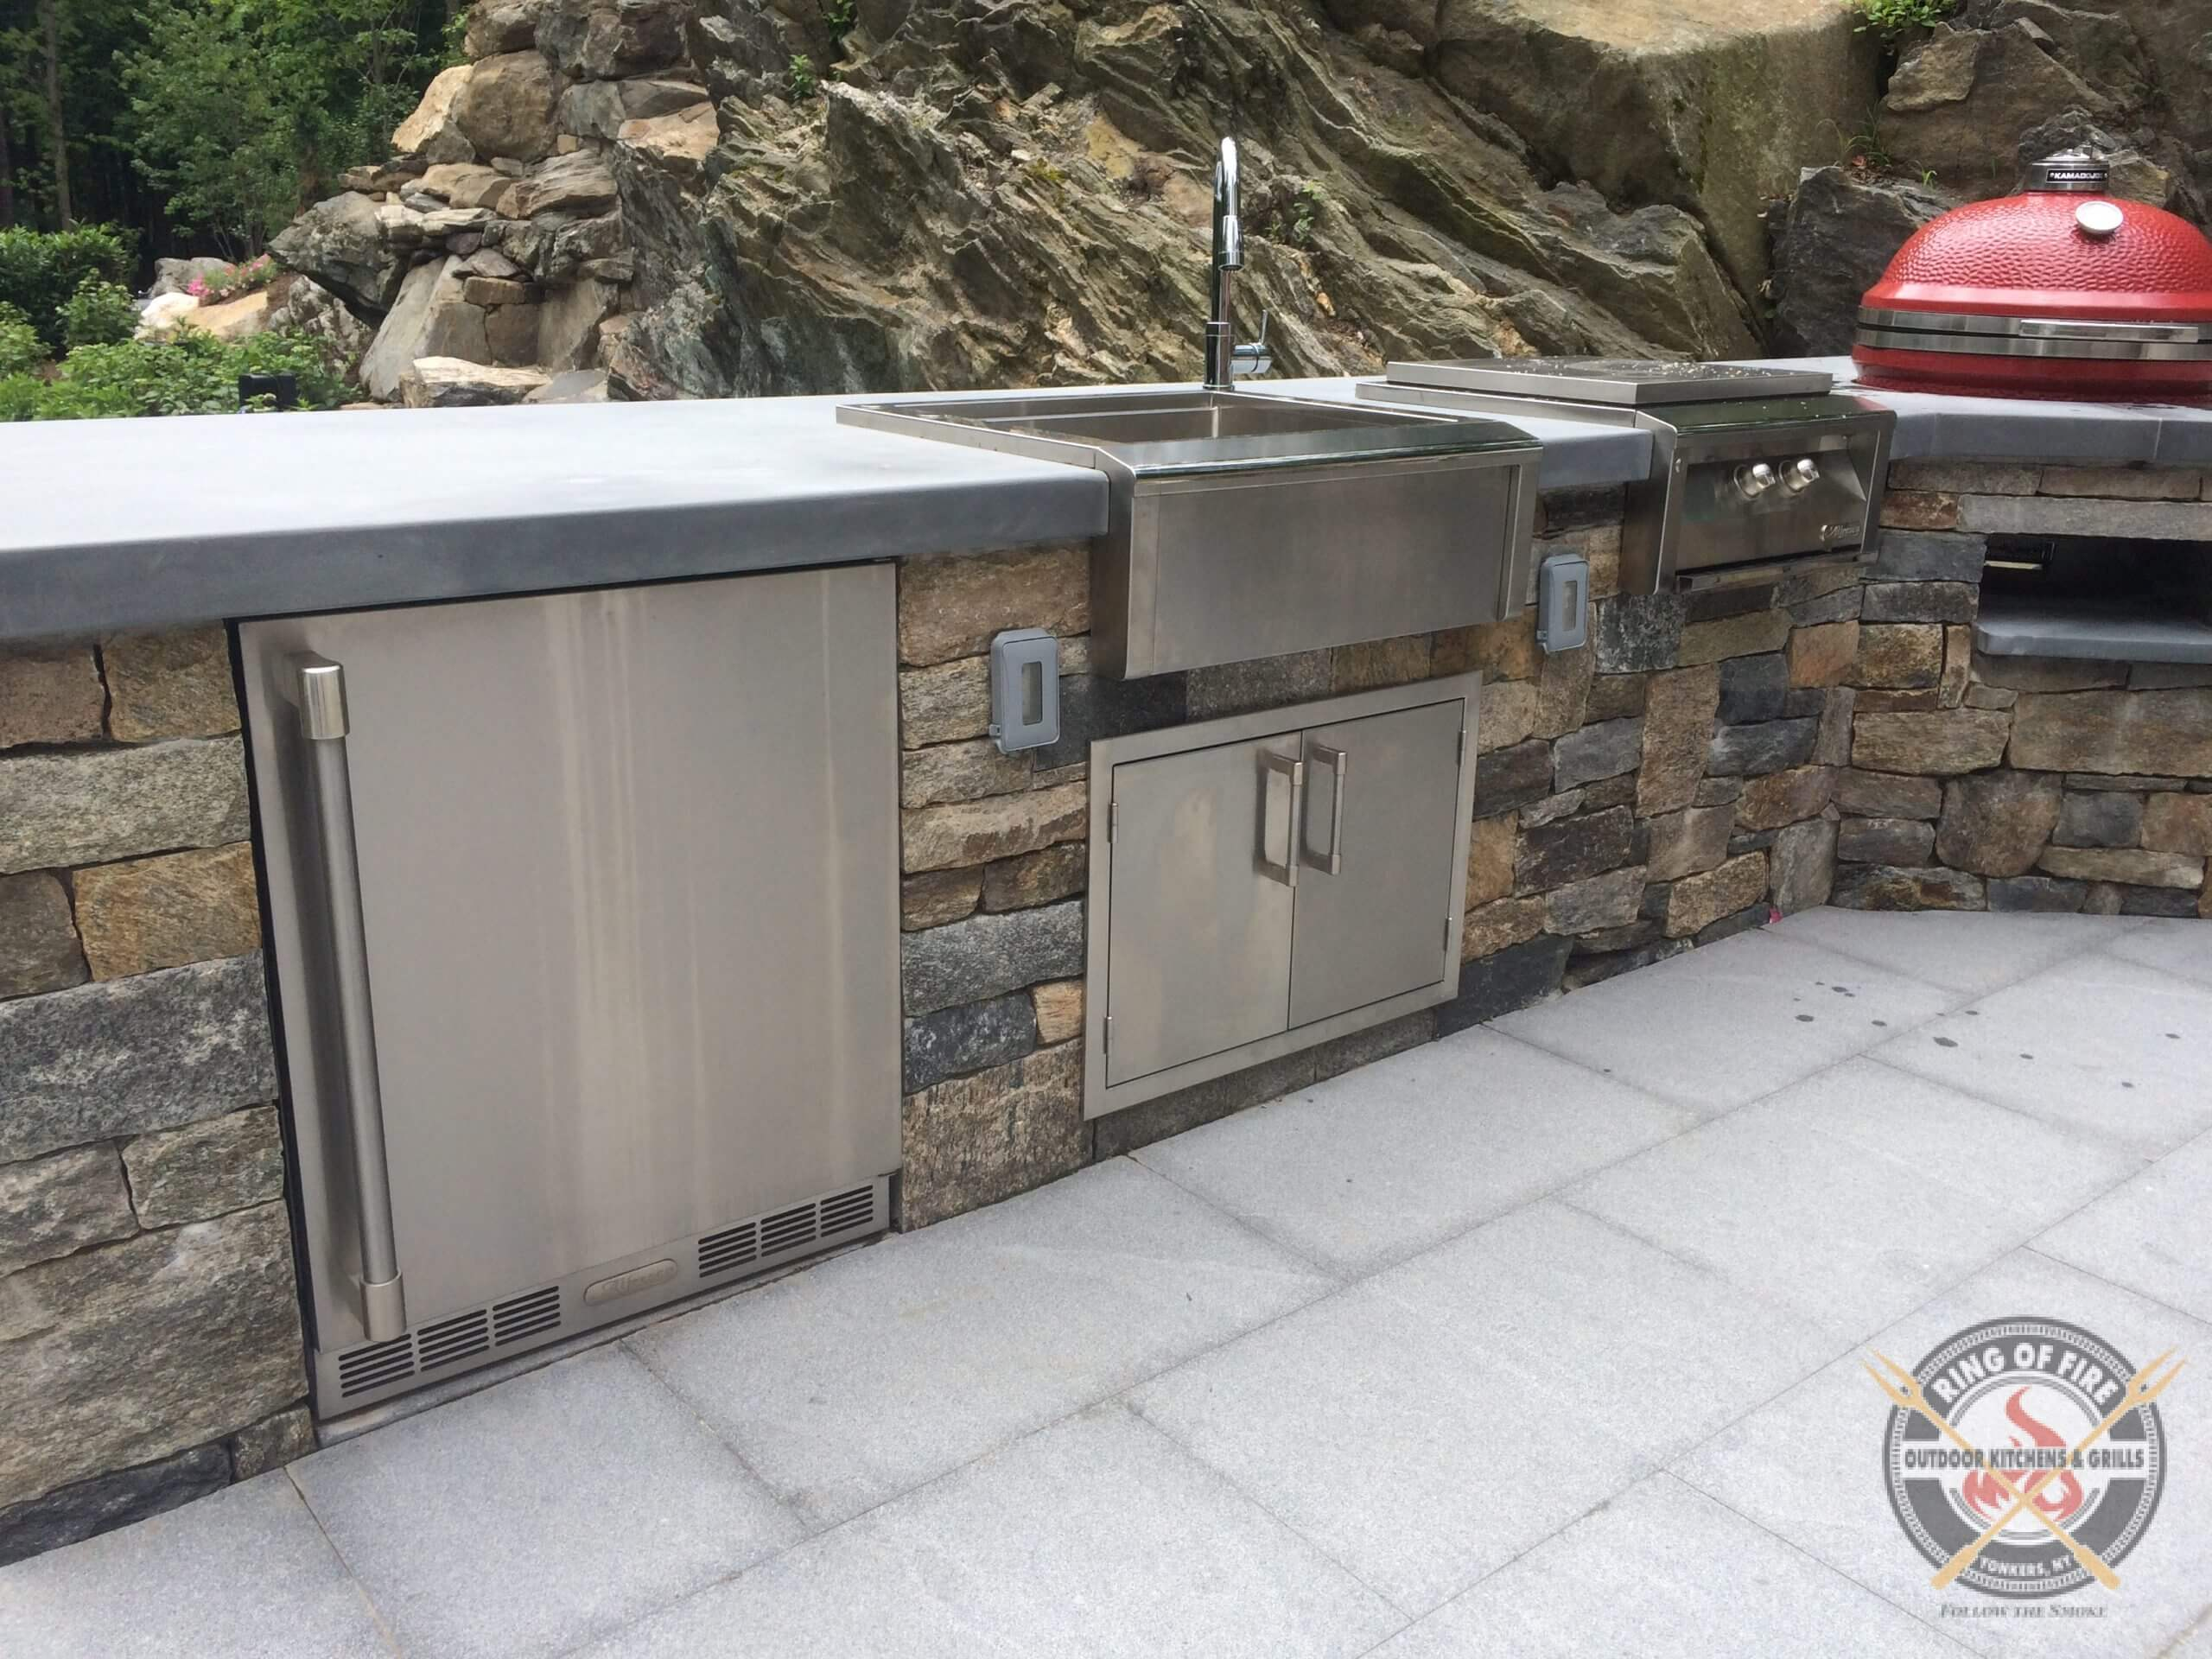 Alfresco Outdoor Kitchen - URS1XE Refrigerator